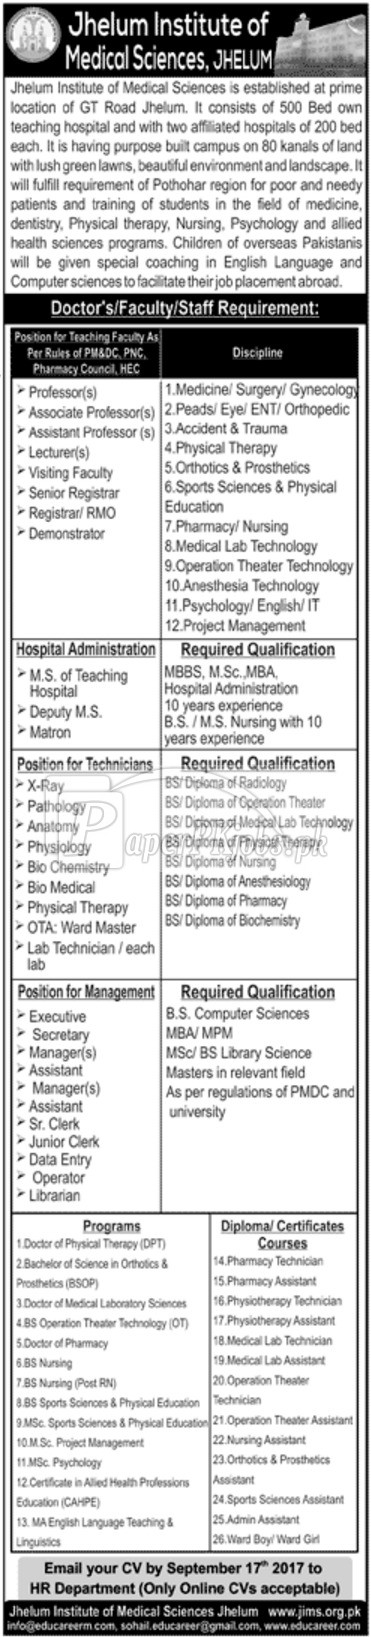 Jhelum Institute of Medical Sciences JIMS Jhelum Jobs 2017